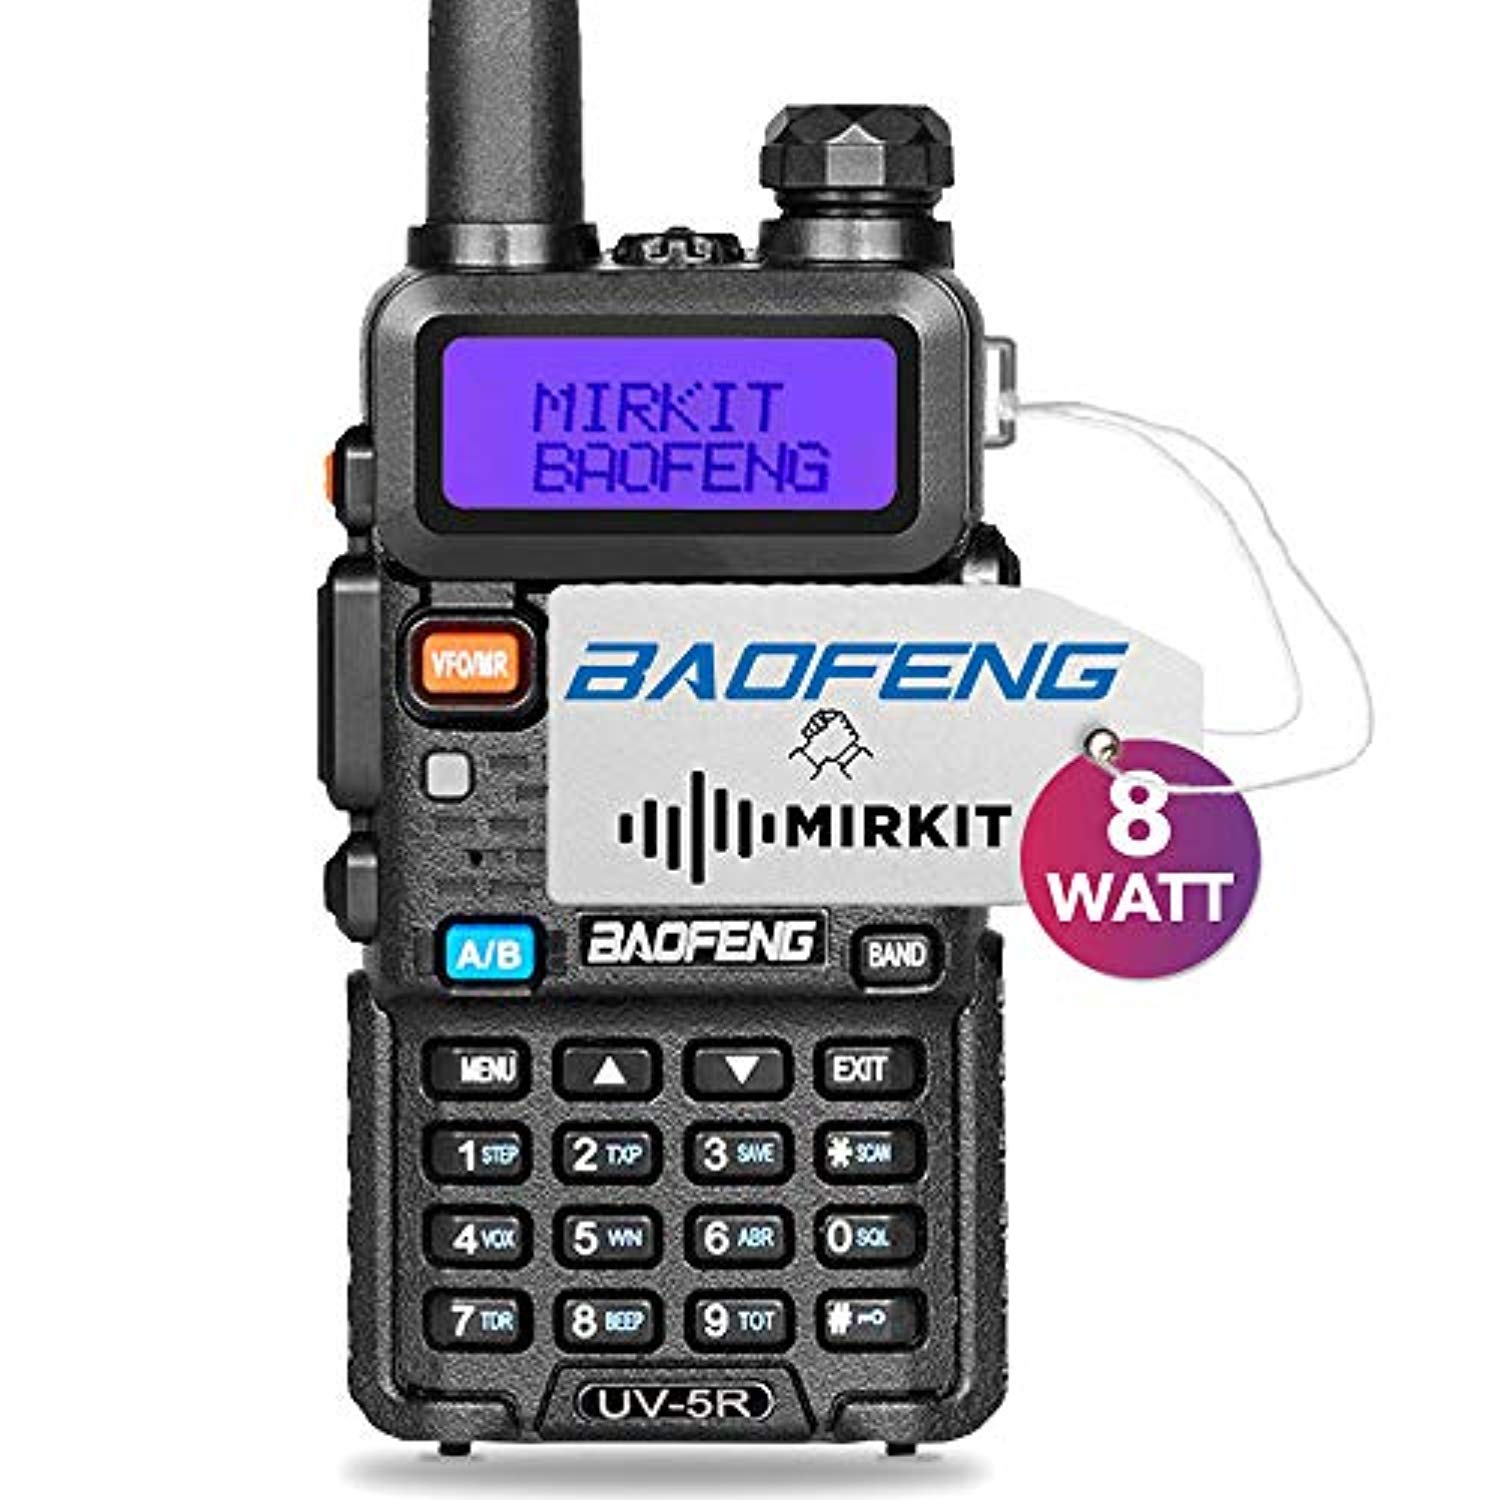 Mirkit Radio UV-5R MK4 8W MP Max Power 2019 1800 mAh Li-Ion Battery Pack,